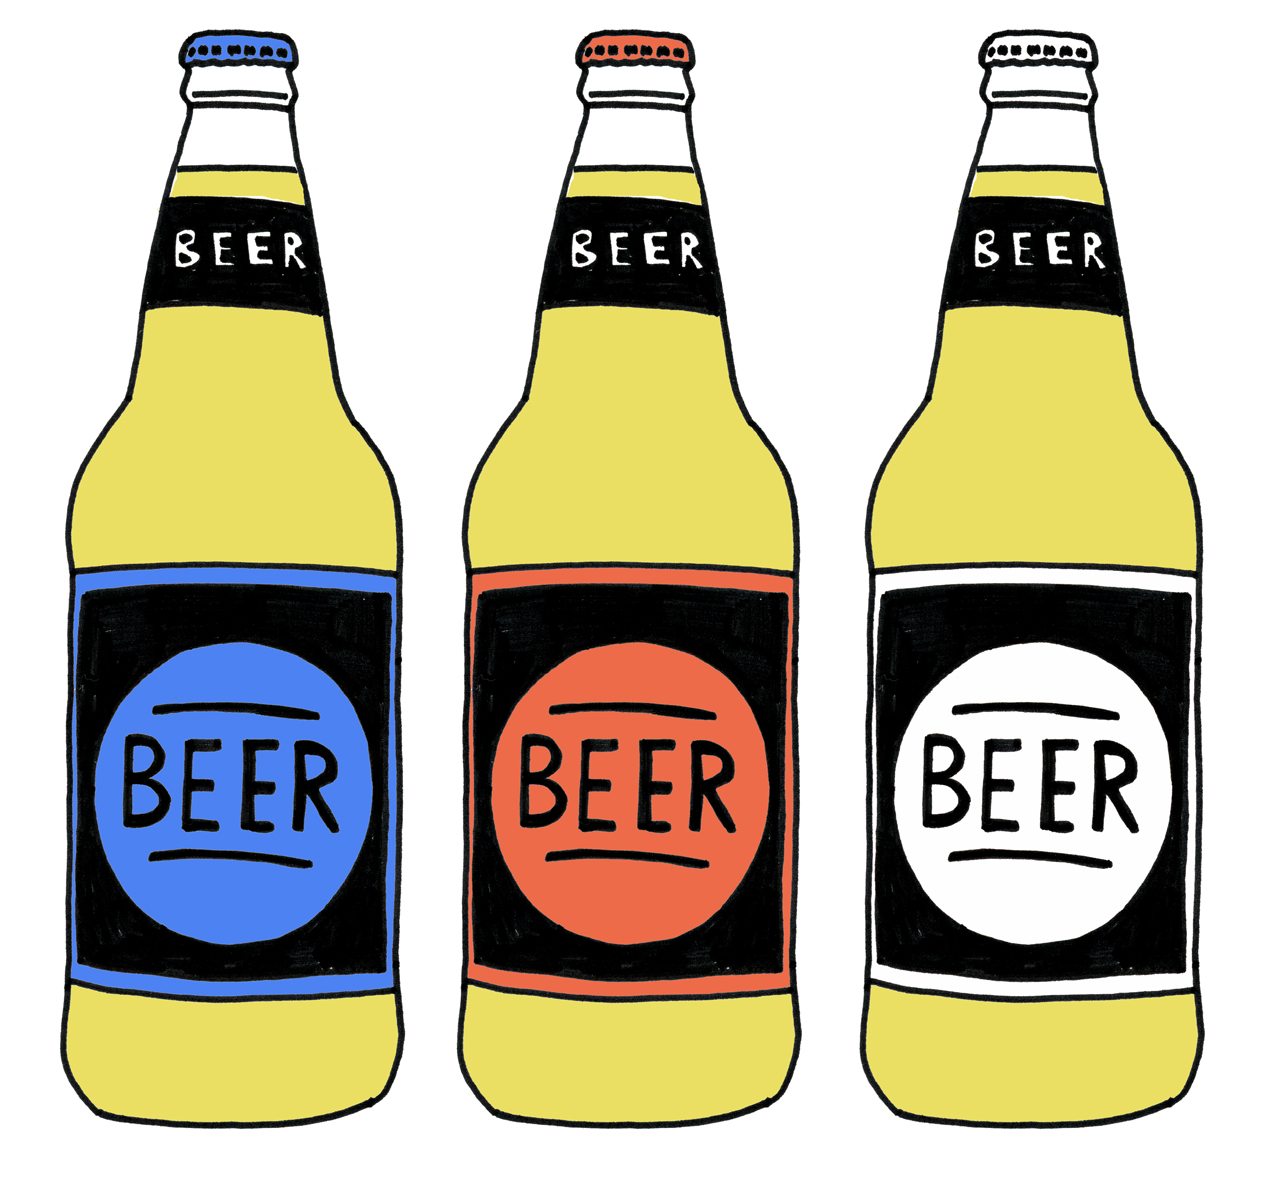 hight resolution of beer and cider bottle illustrations